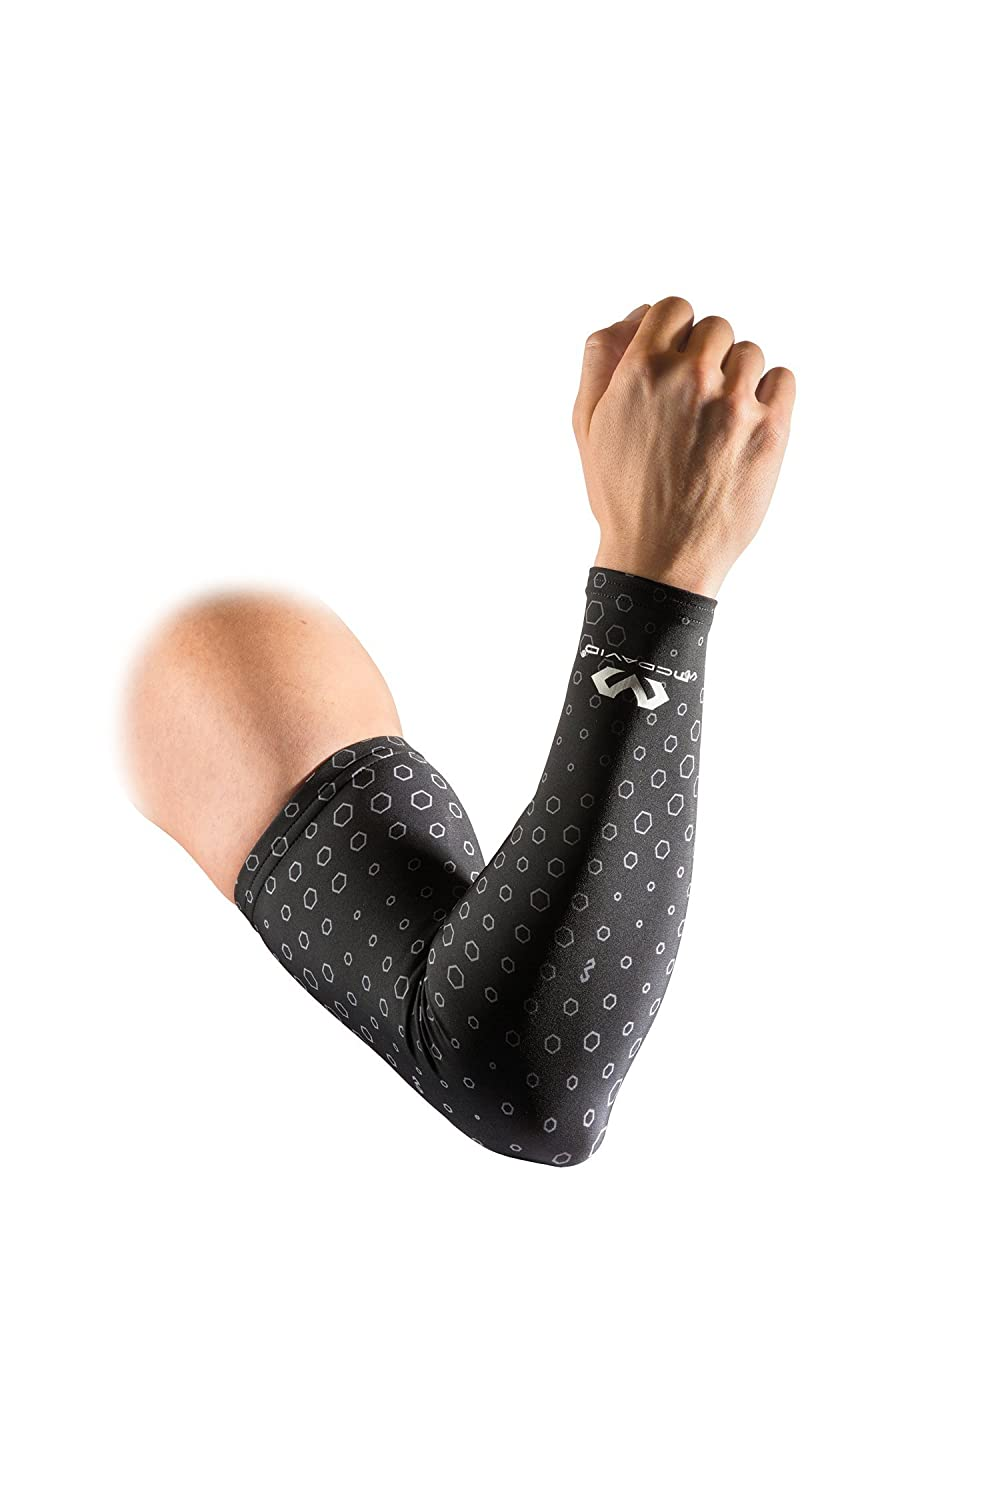 McDavid 6579 uCool Compression Arm Sleeves Cooling Arm Compression Sleeves with 50+ UV Sun Protection for Running